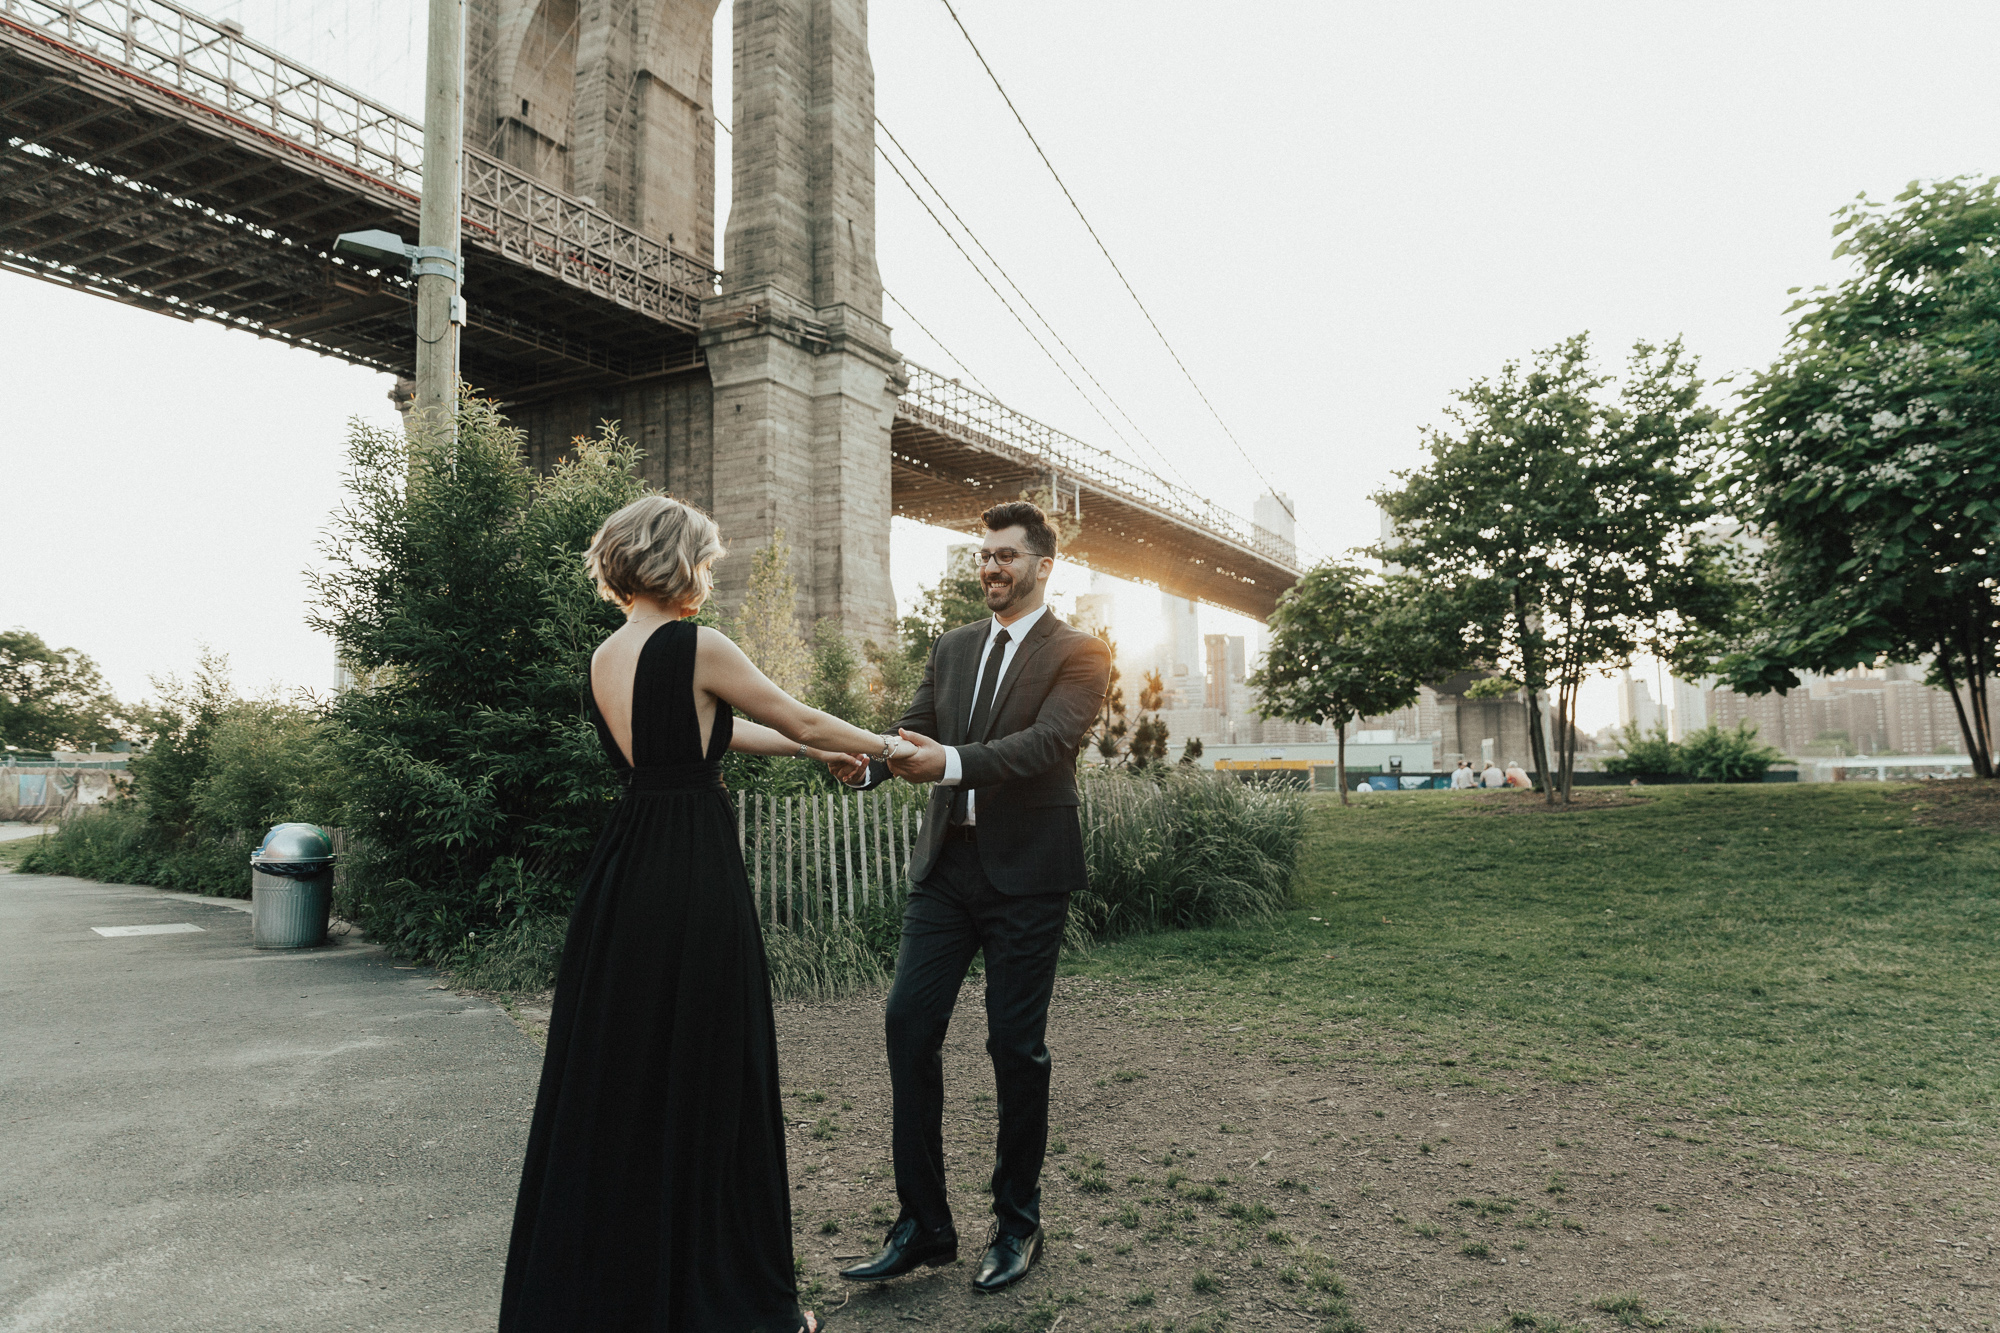 brooklyn_nyc_engagement_photography-57-of-83.jpg